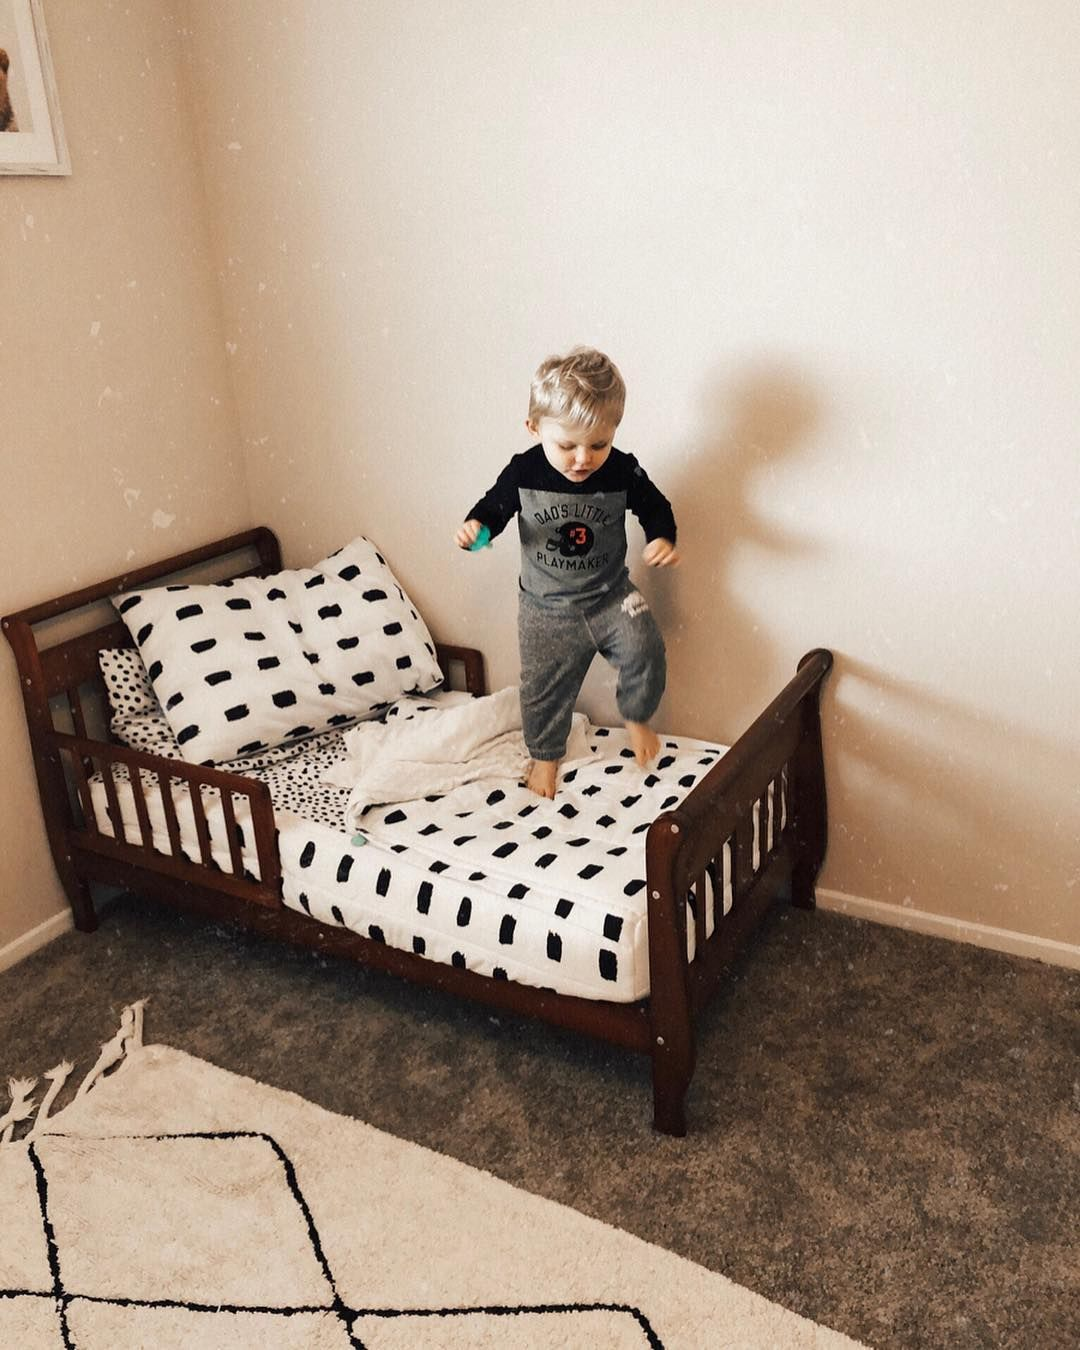 9 Diy Toddler Bed Ideas Guide To Choose The Right Toddler Bed Plans In 2020 Diy Toddler Bed Toddler Bed Toddler House Bed